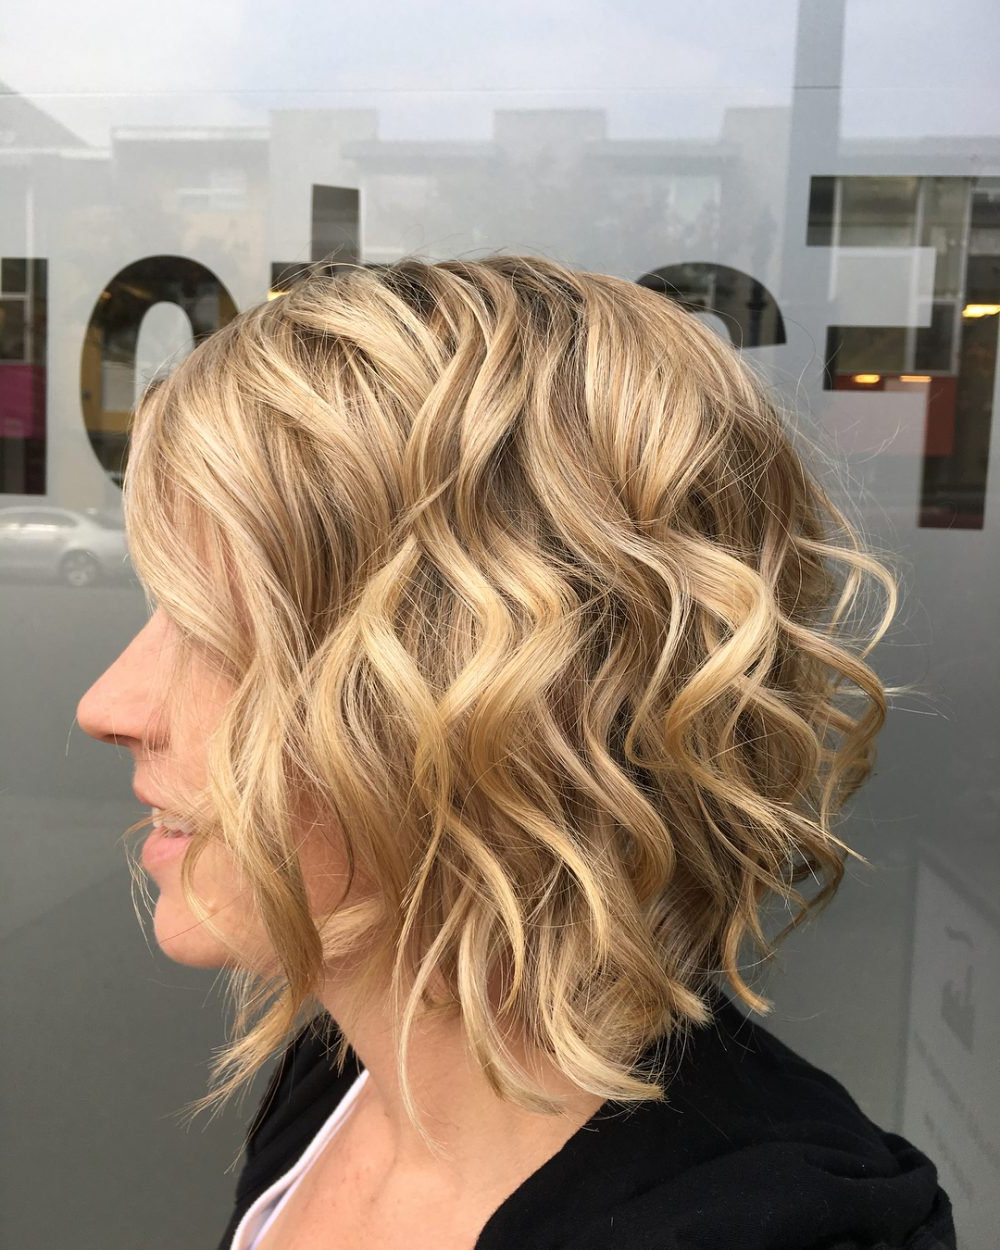 43 Greatest Wavy Bob Hairstyles – Short, Medium And Long In 2019 Pertaining To Most Popular Layered Tousled Bob Hairstyles (View 4 of 20)